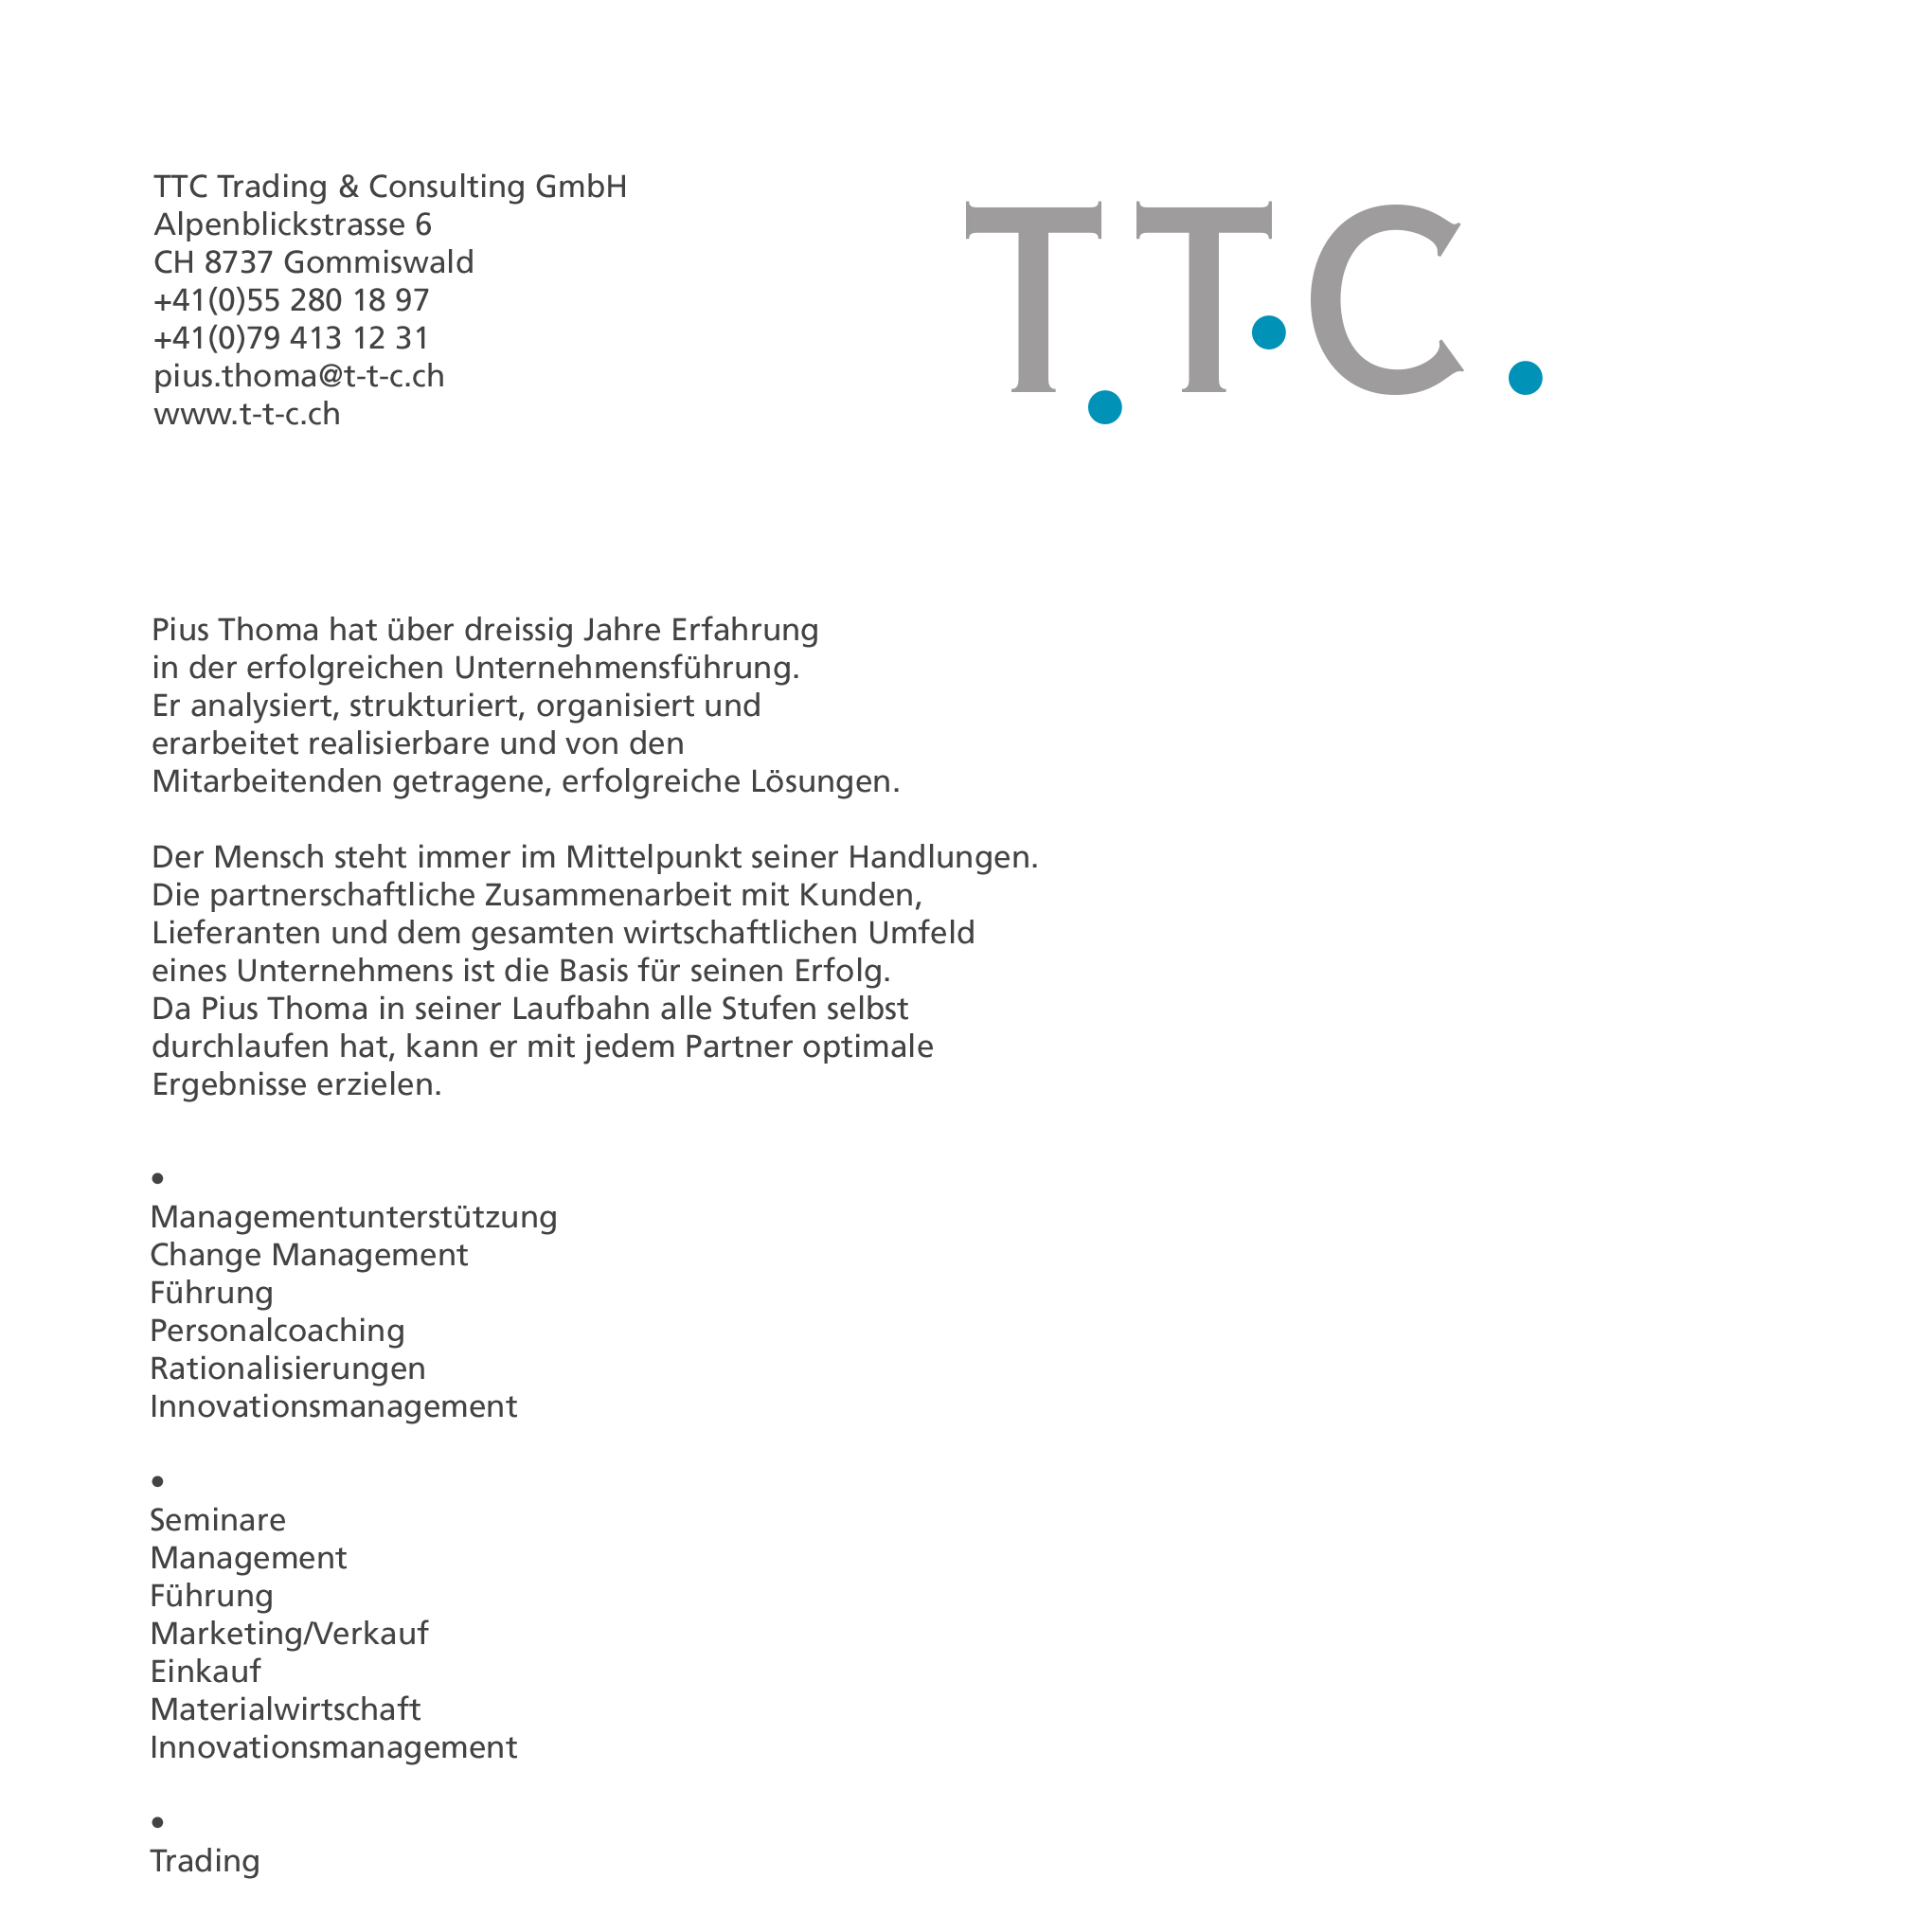 TTC Trading & Consulting GmbH